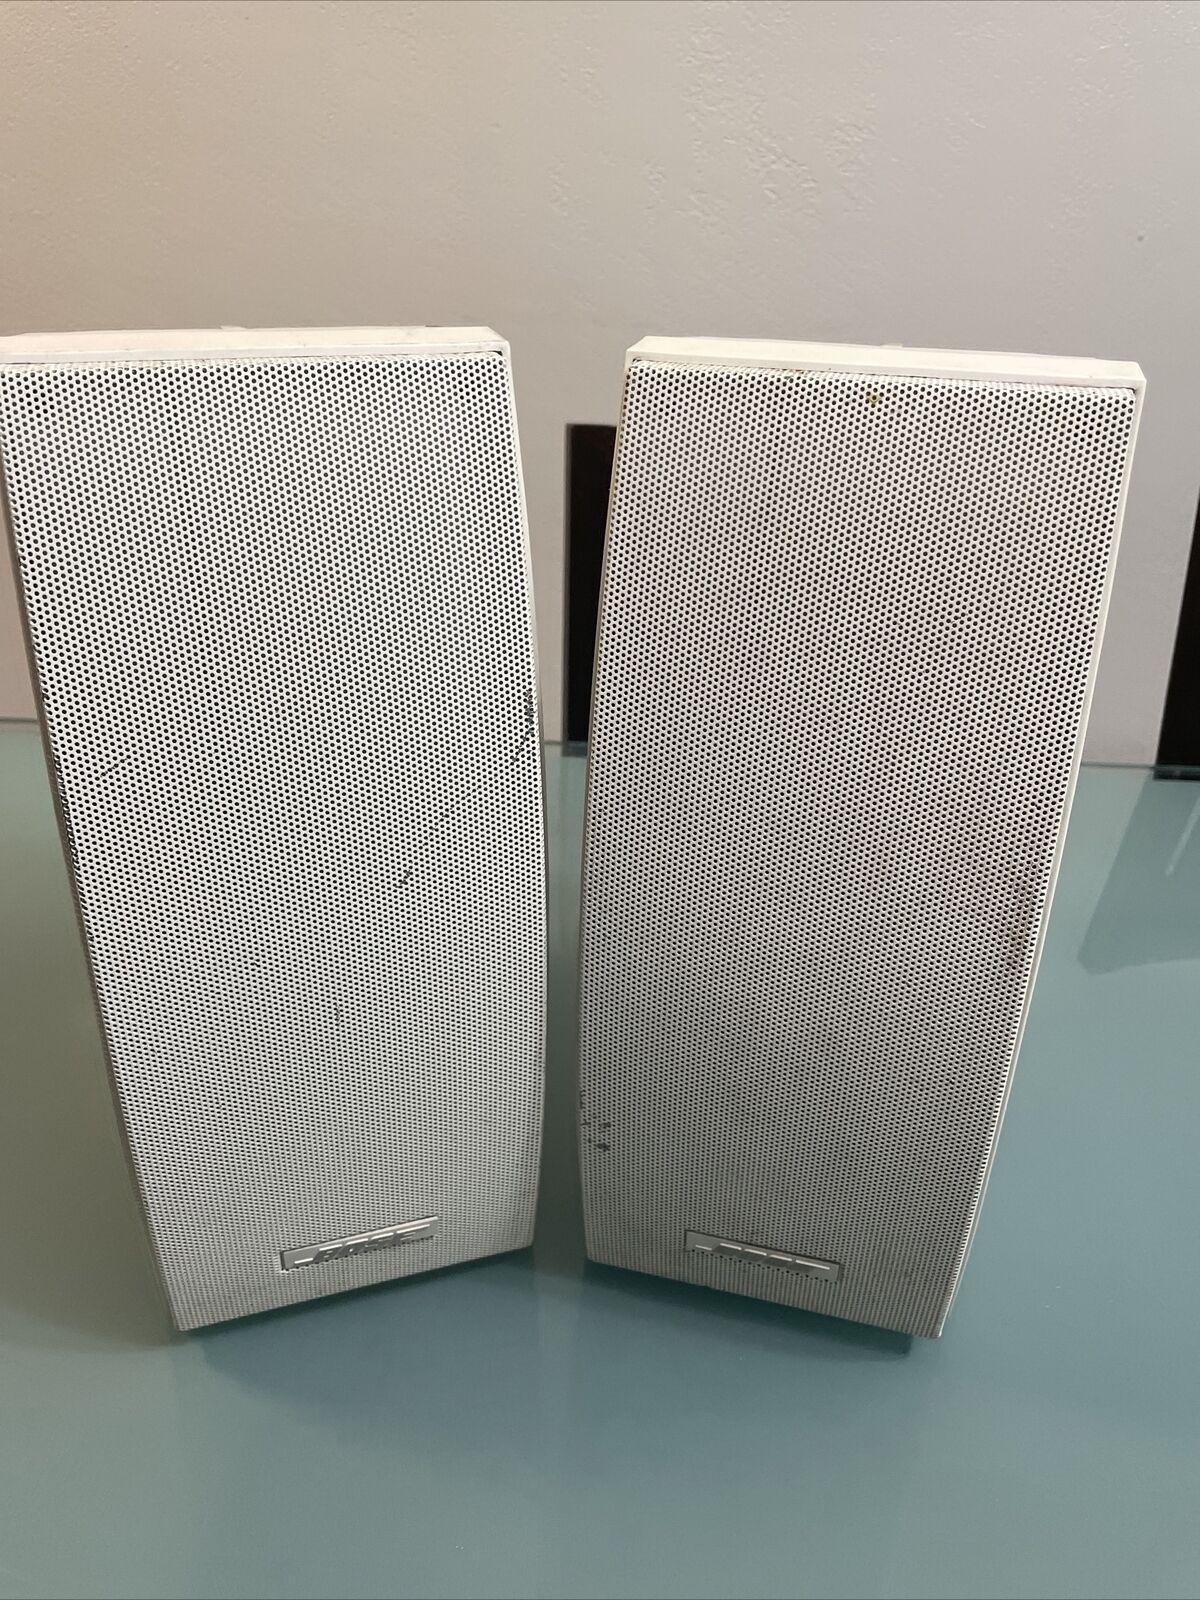 Bose 251 Outdoor Environmental Speakers - White Sound Nice, 2 Speakers, One Pair. Buy it now for 200.00